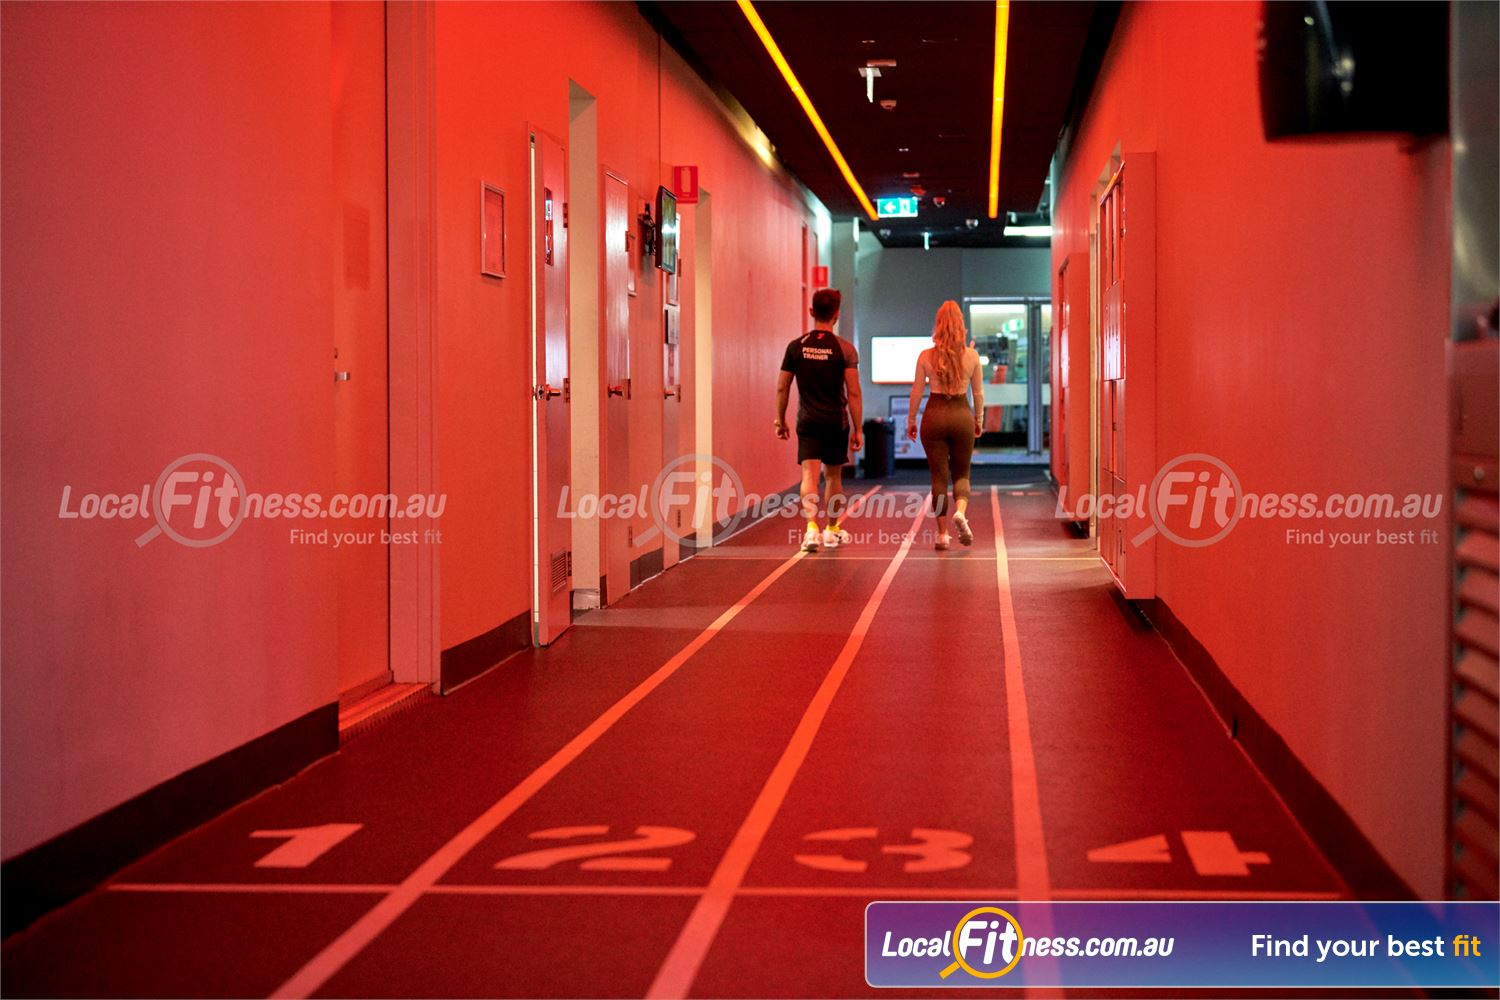 Fitness First QV Platinum Melbourne Our indoor running track at Fitness First QV.